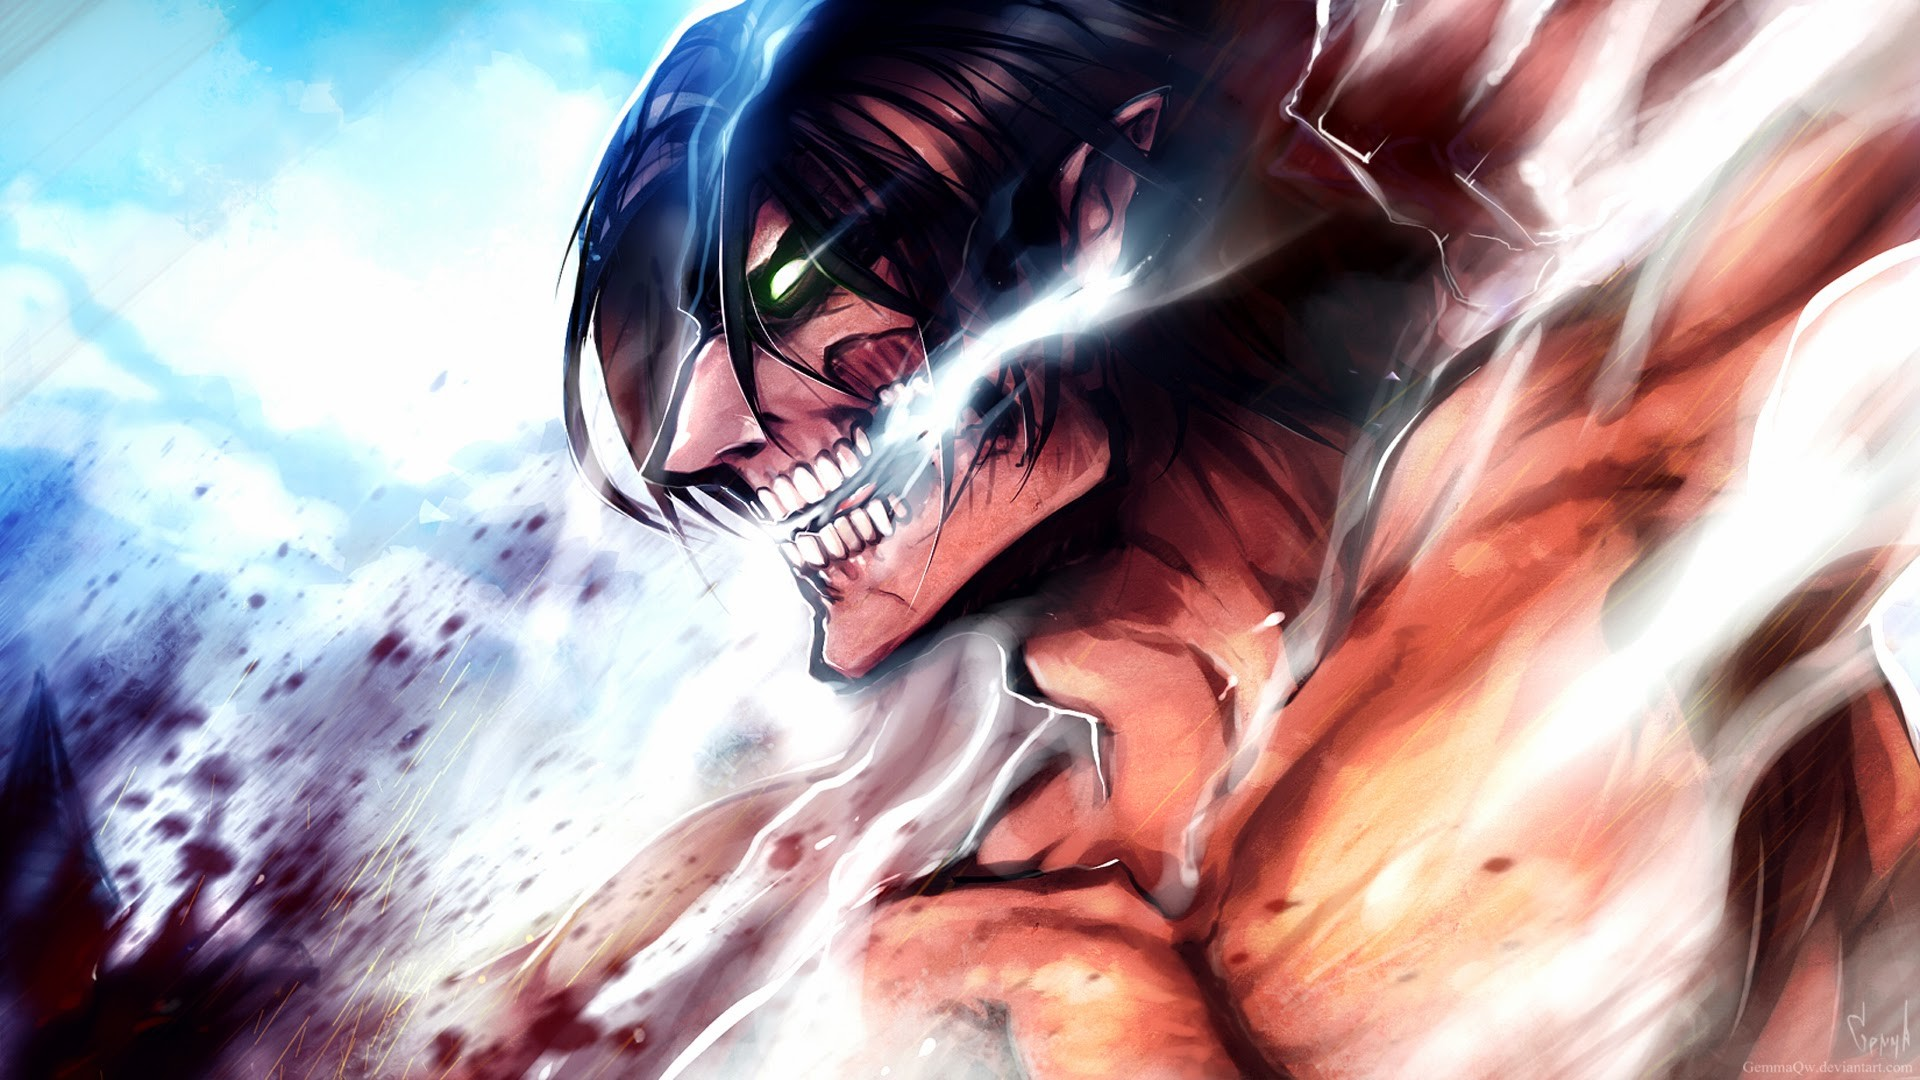 Anime Attack On Titan Wallpaper Hd Anime Wallpapers